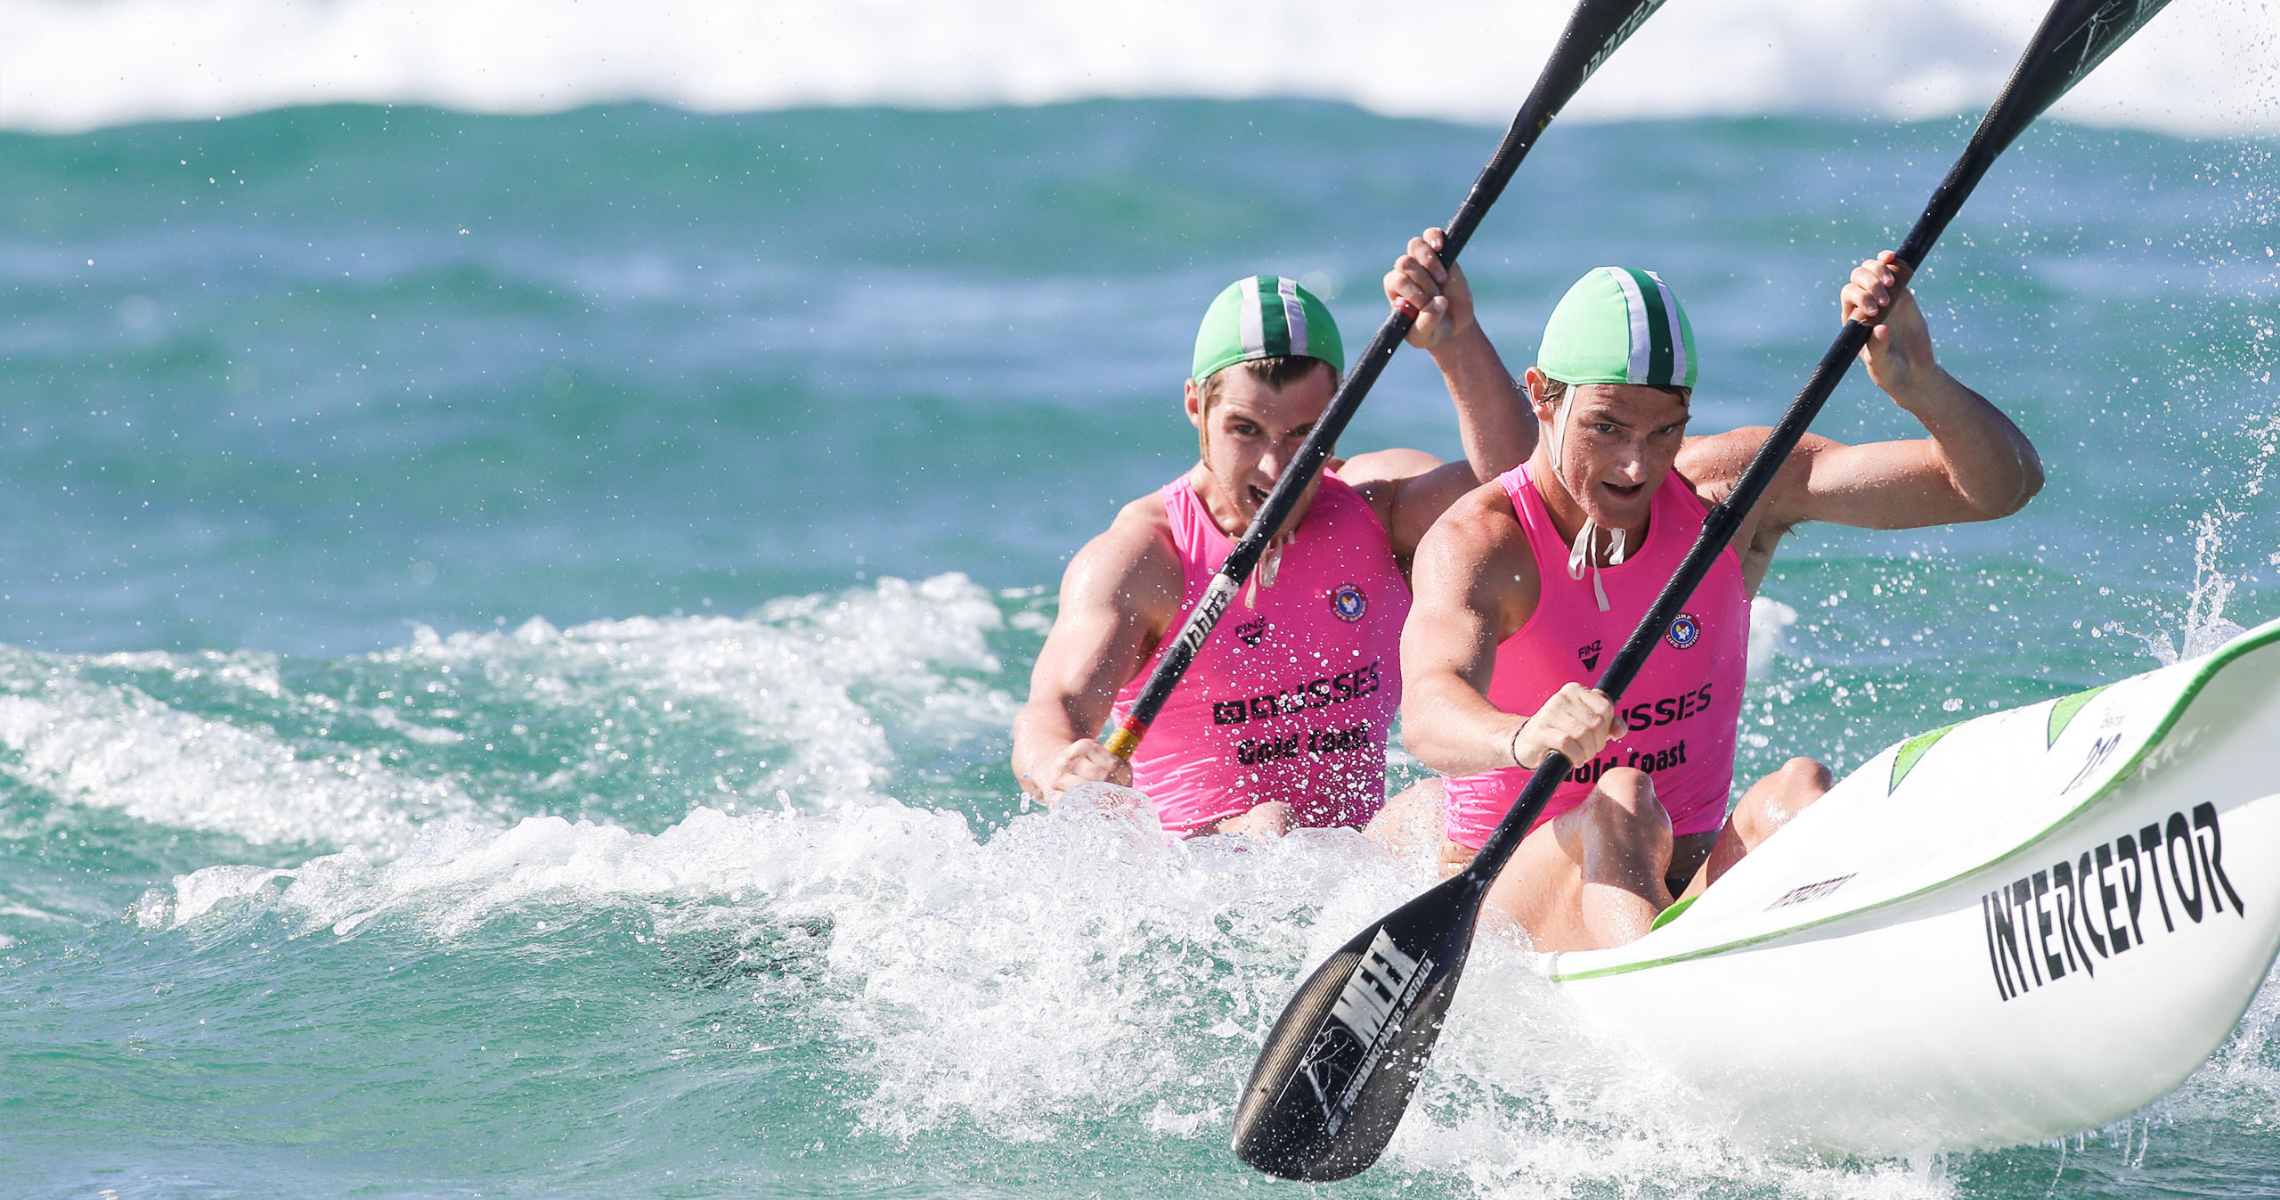 Major Events Gold Coast secures long-term Aussies surf deal for Queensland recovery